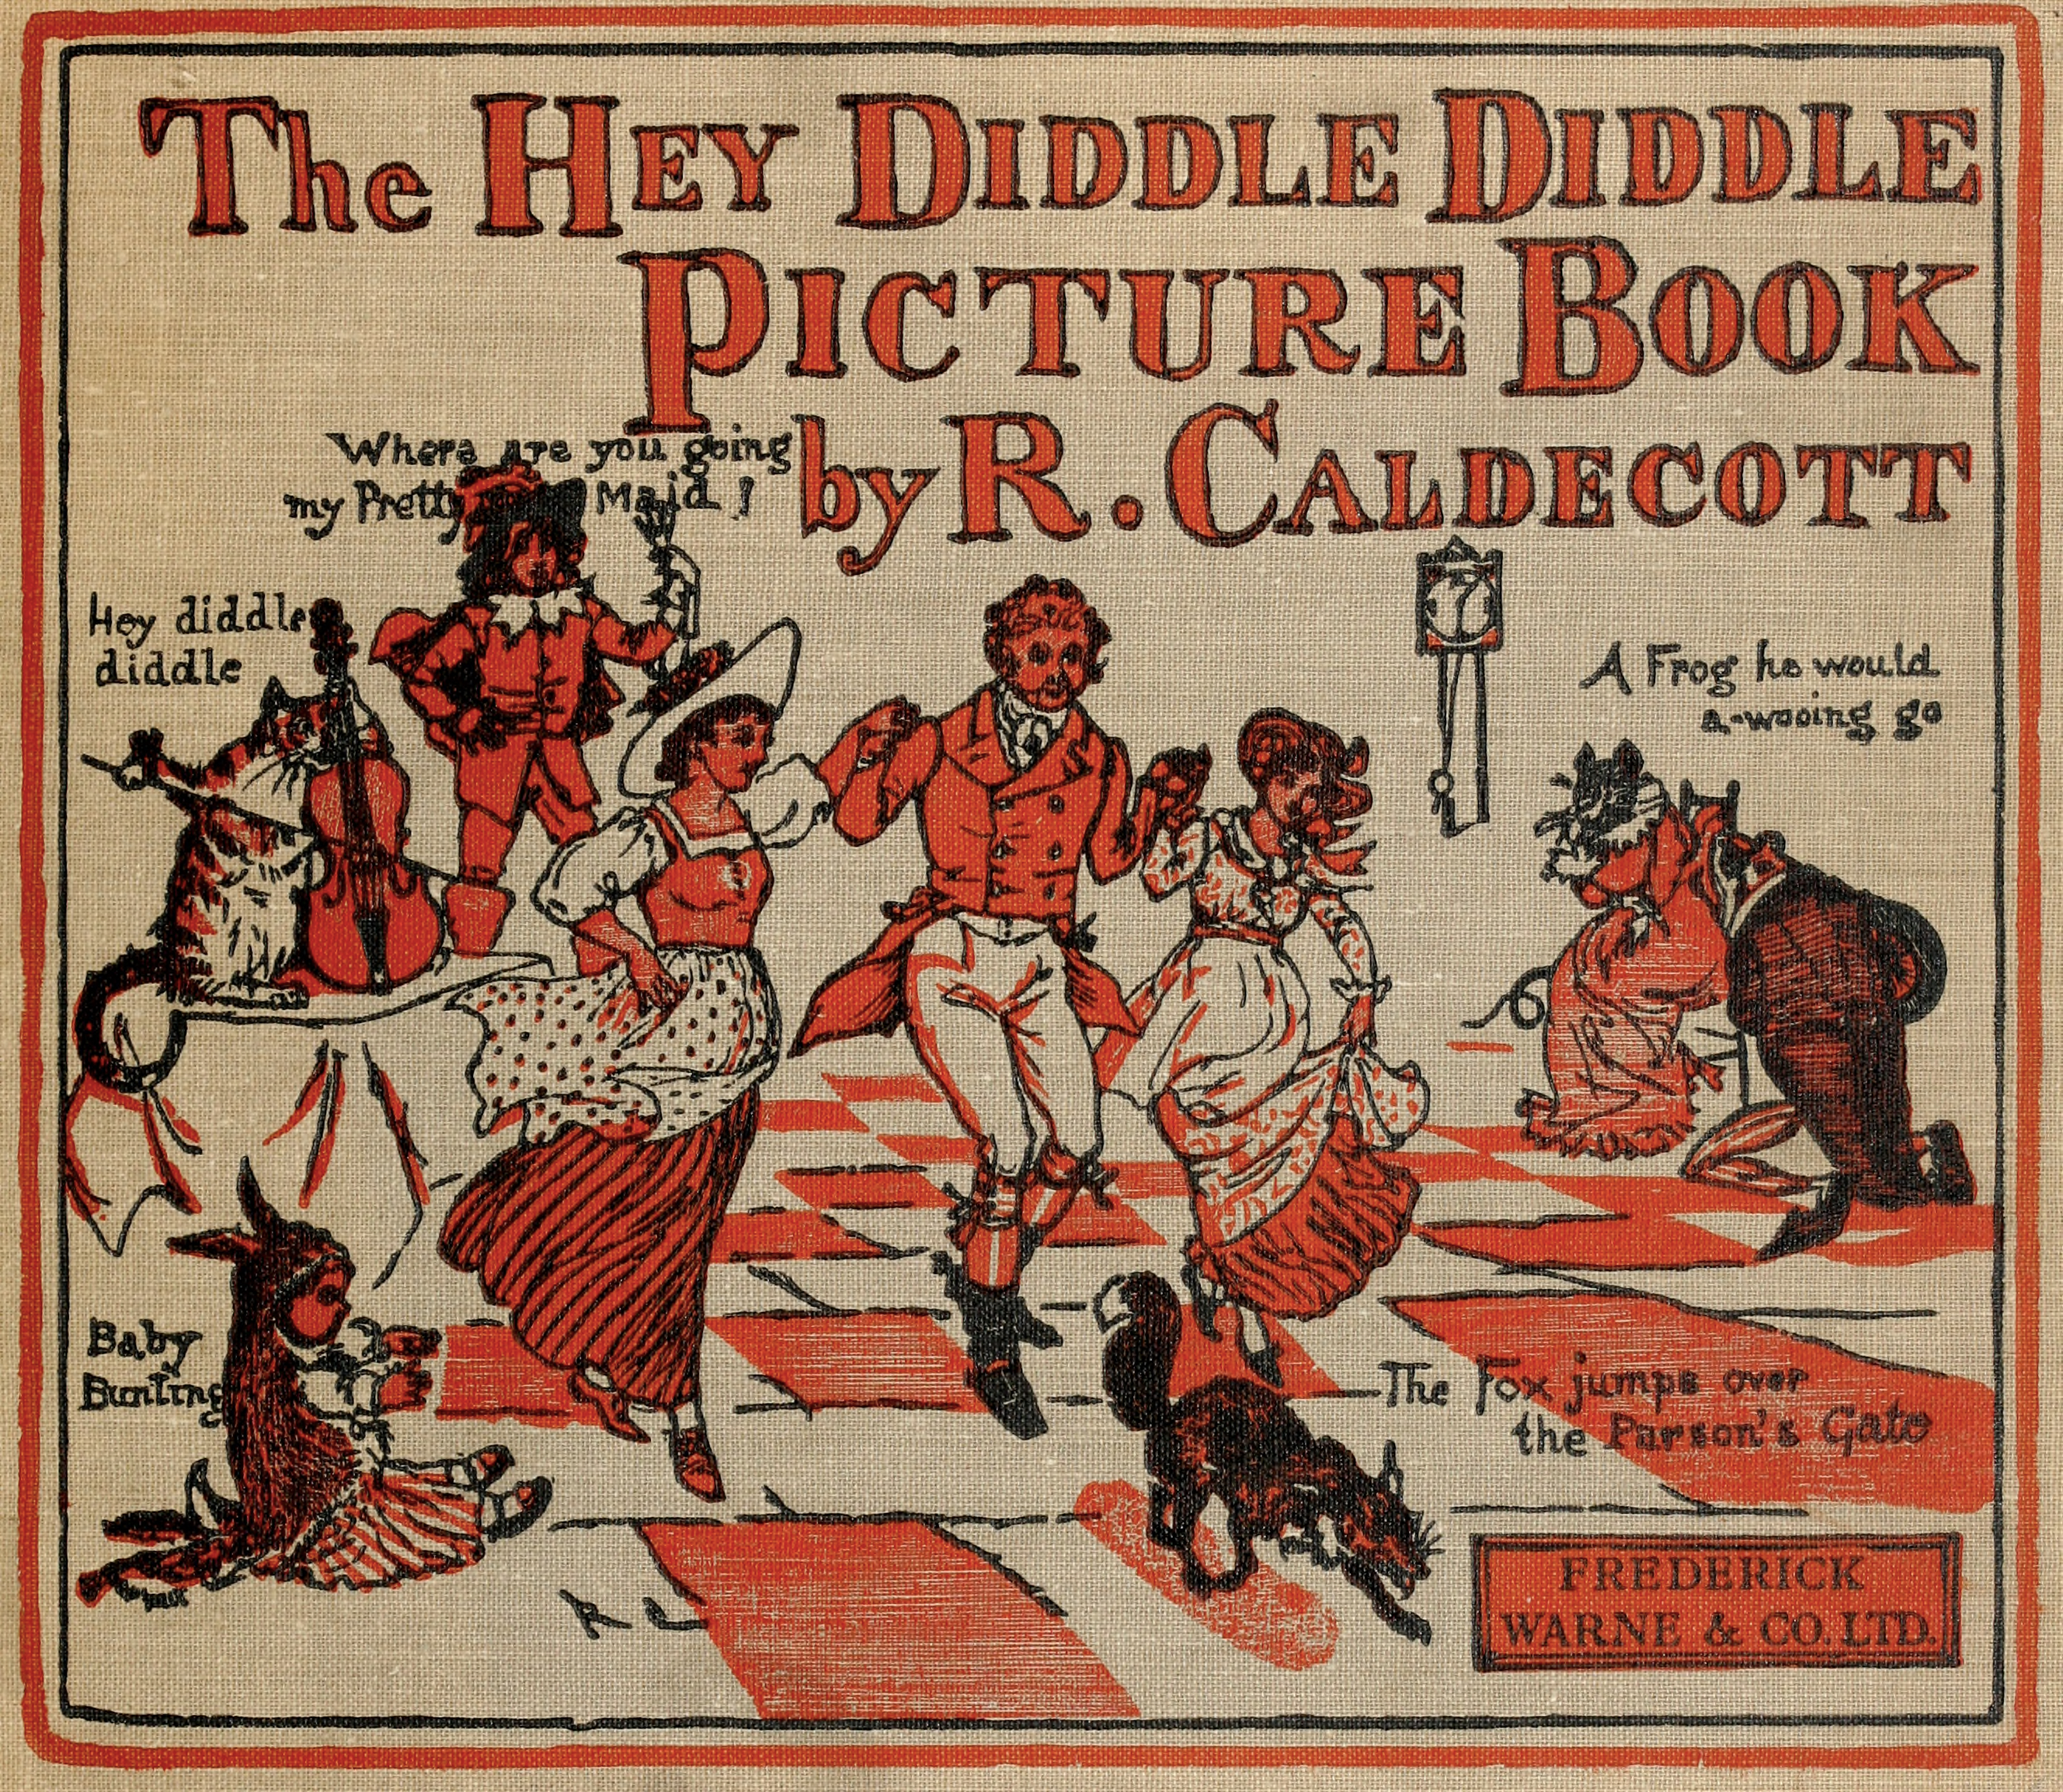 Hey_Diddle_Diddle_Picture_Book_1882_Randolph_Caldecott_00010.jpg